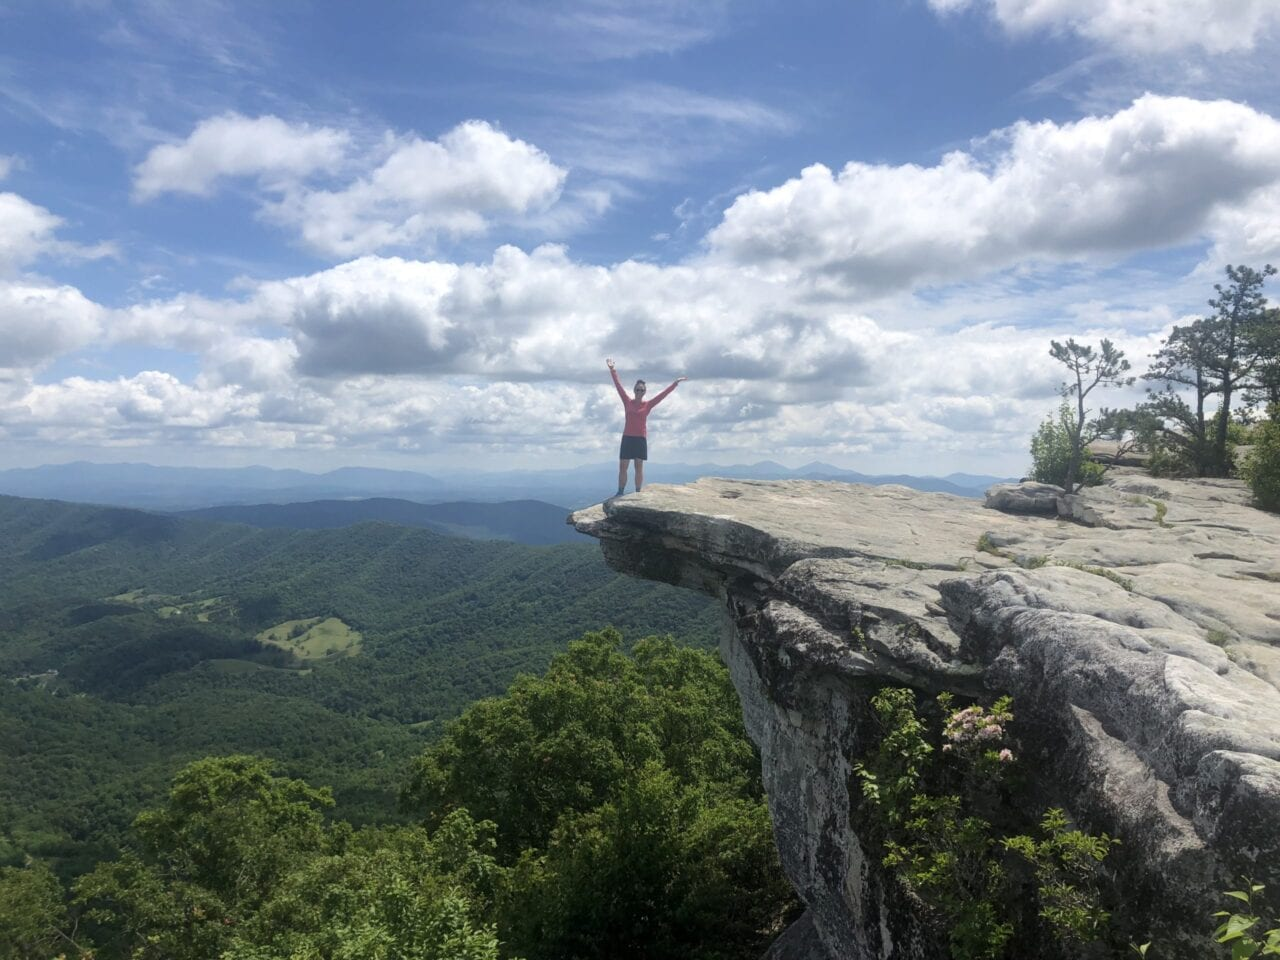 A woman standing on a cliff on the Appalachian Trail.